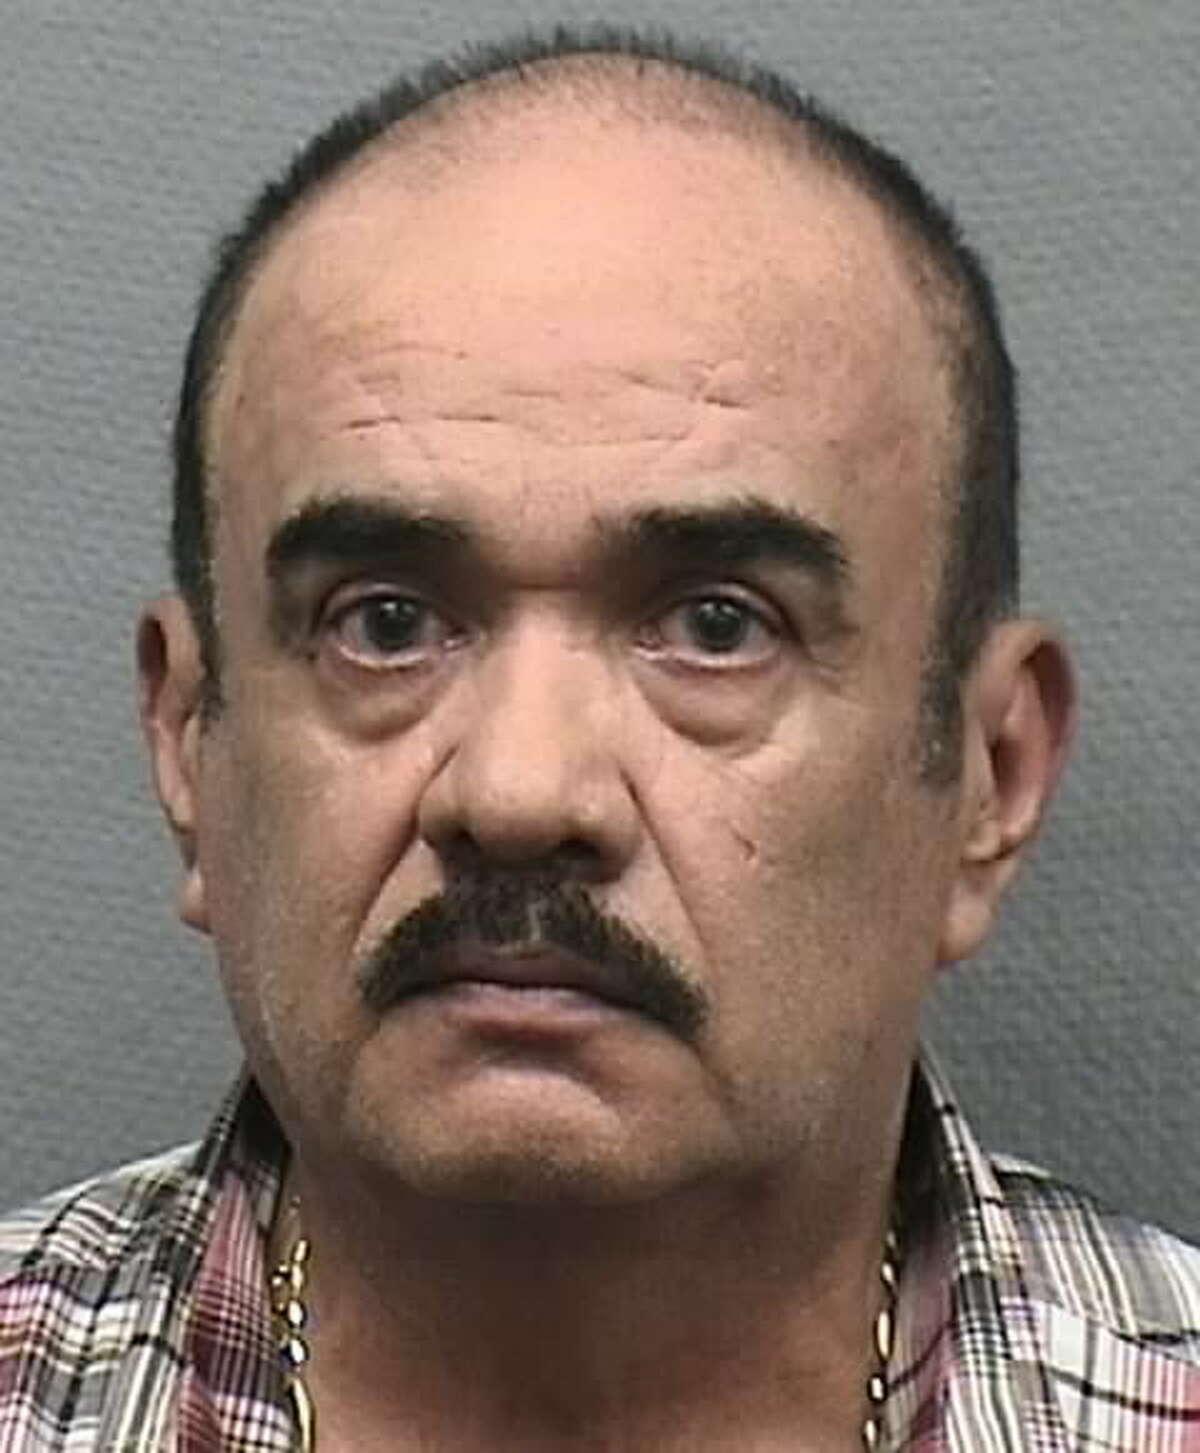 Moises Gaona, 65, was arrested by the Houston Police Department following a two month-long prostitution sting in southeast Houston.